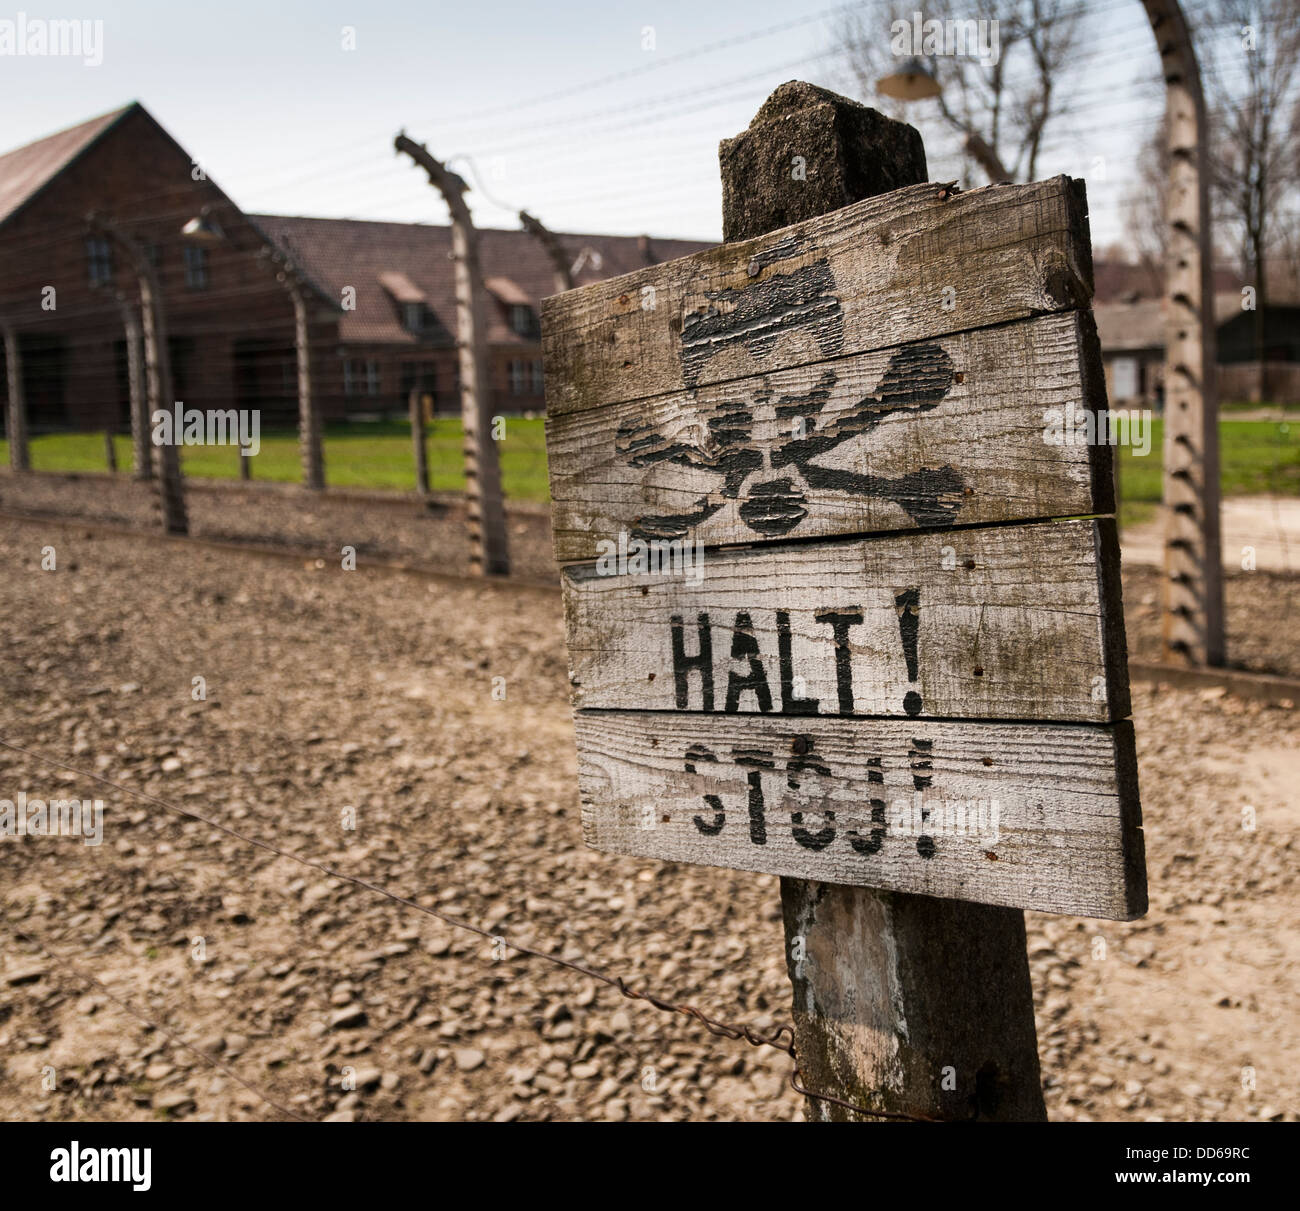 Sign in Auschwitz concentration camp, Poland. - Stock Image